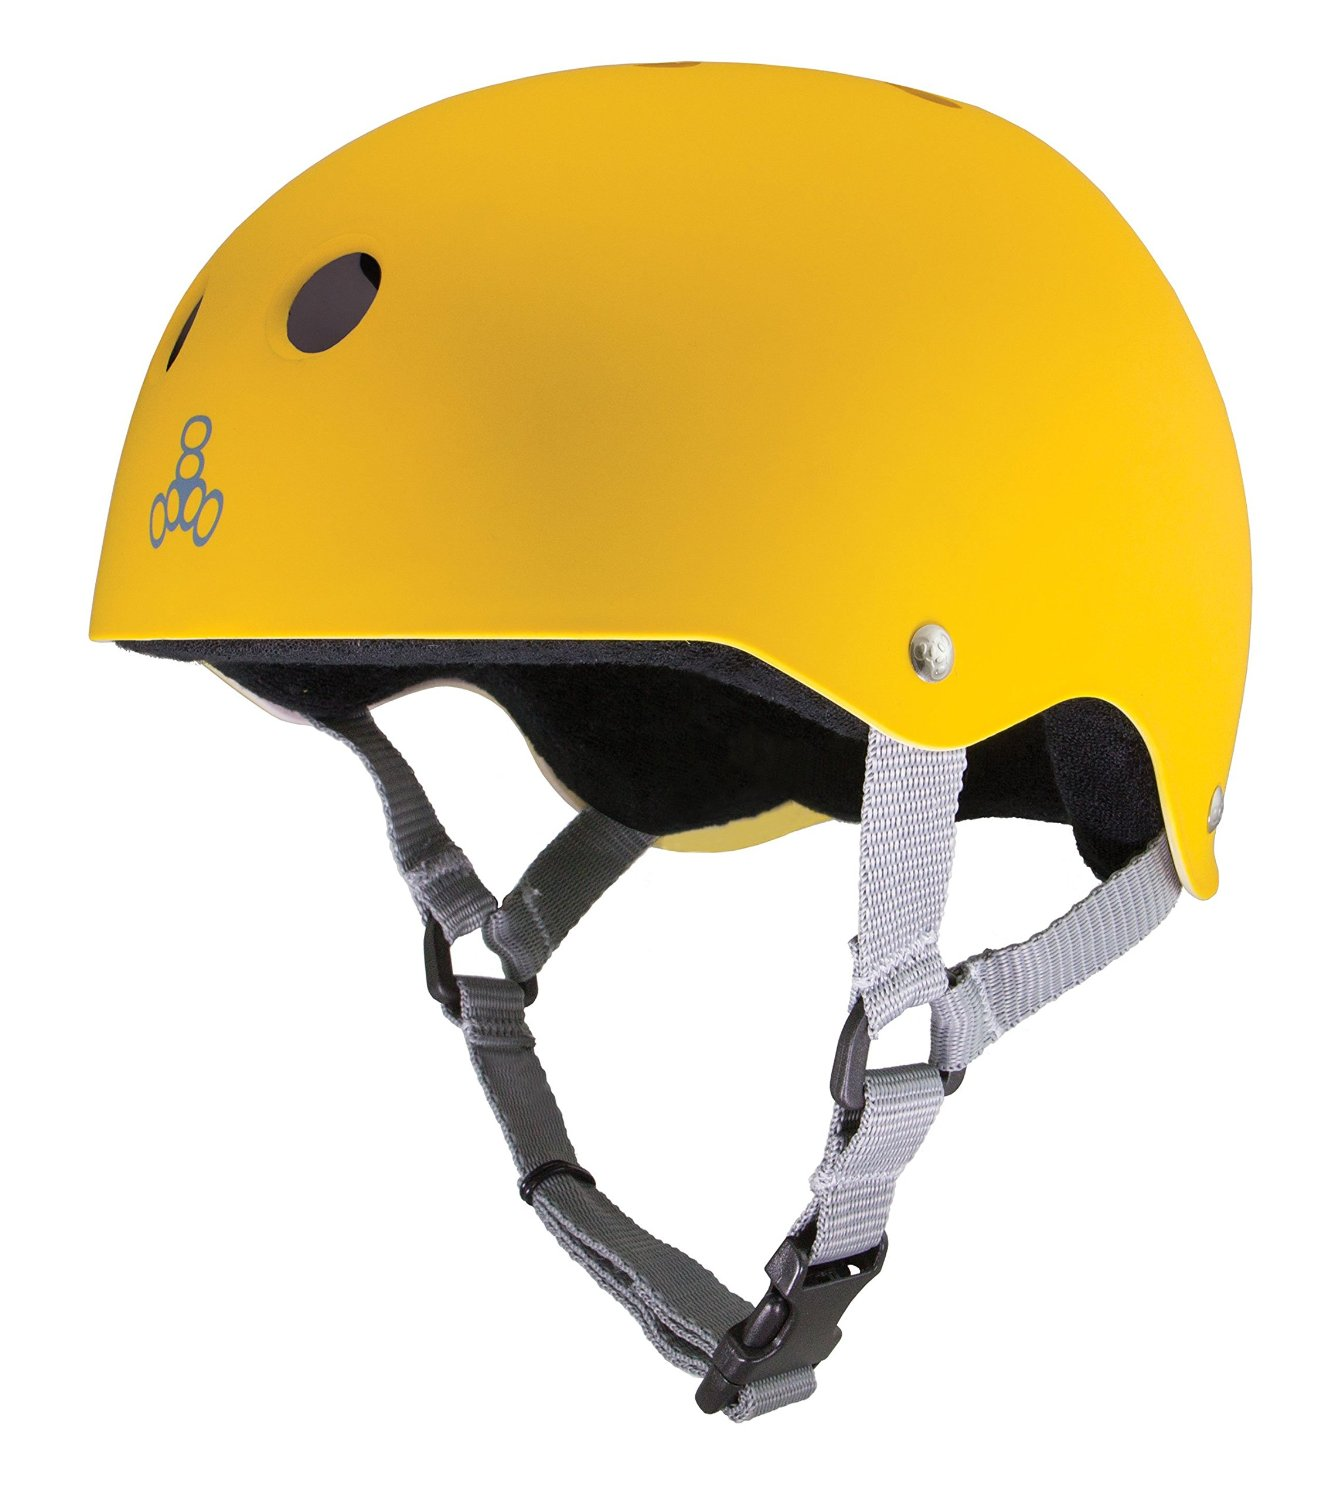 HELMET (OPTIONAL)